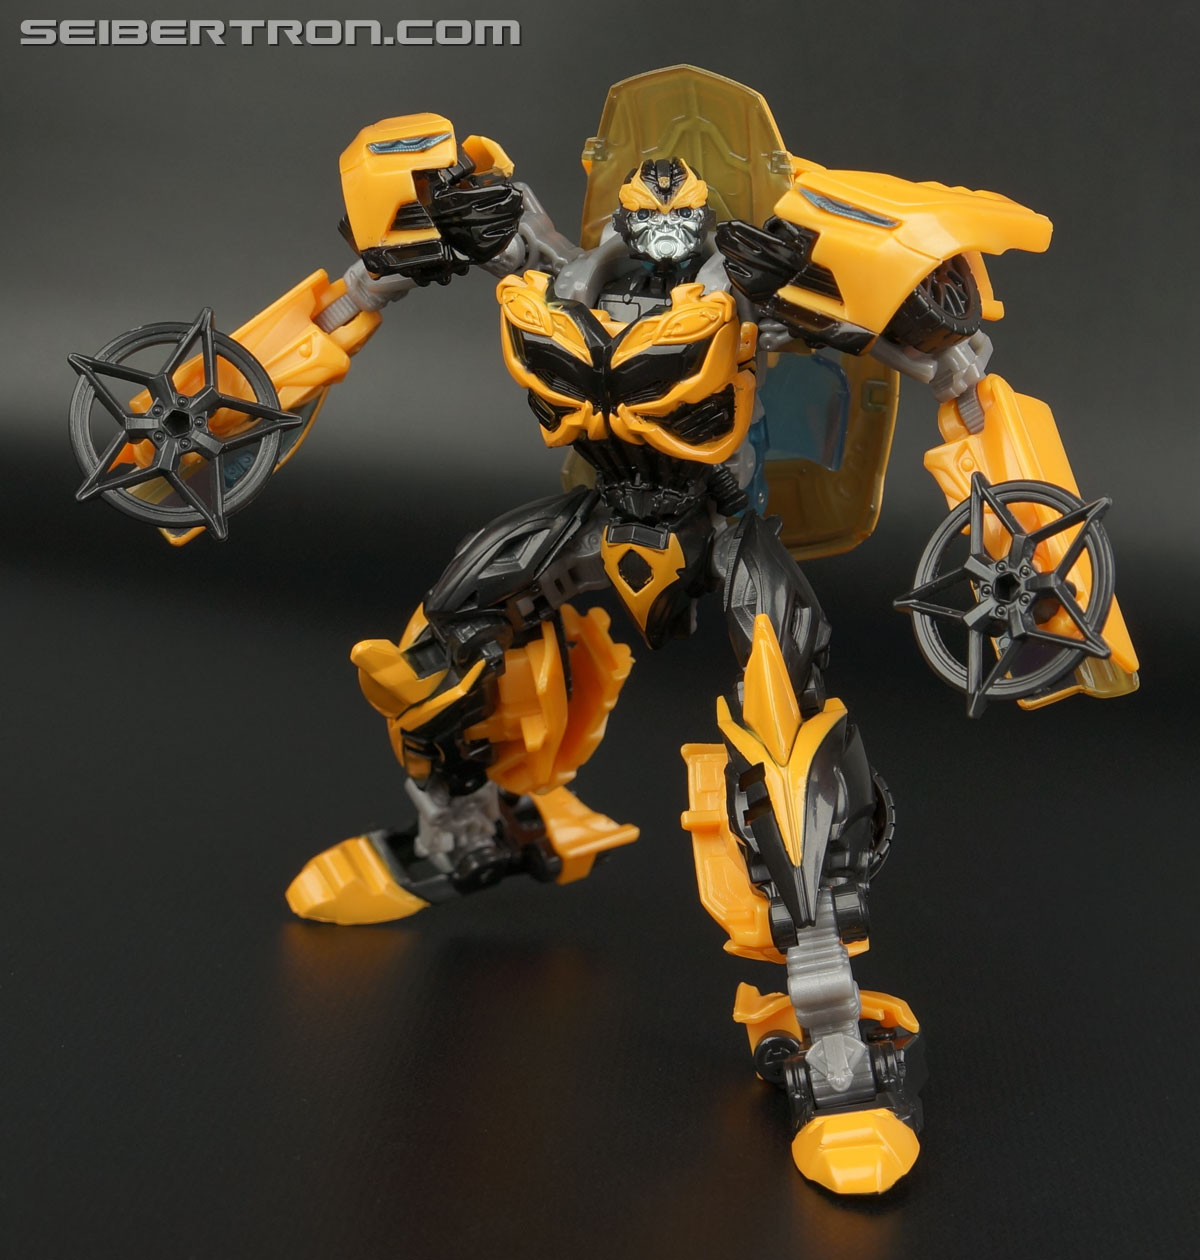 Transformers Age of Extinction: Generations Bumblebee (Image #128 of 190)